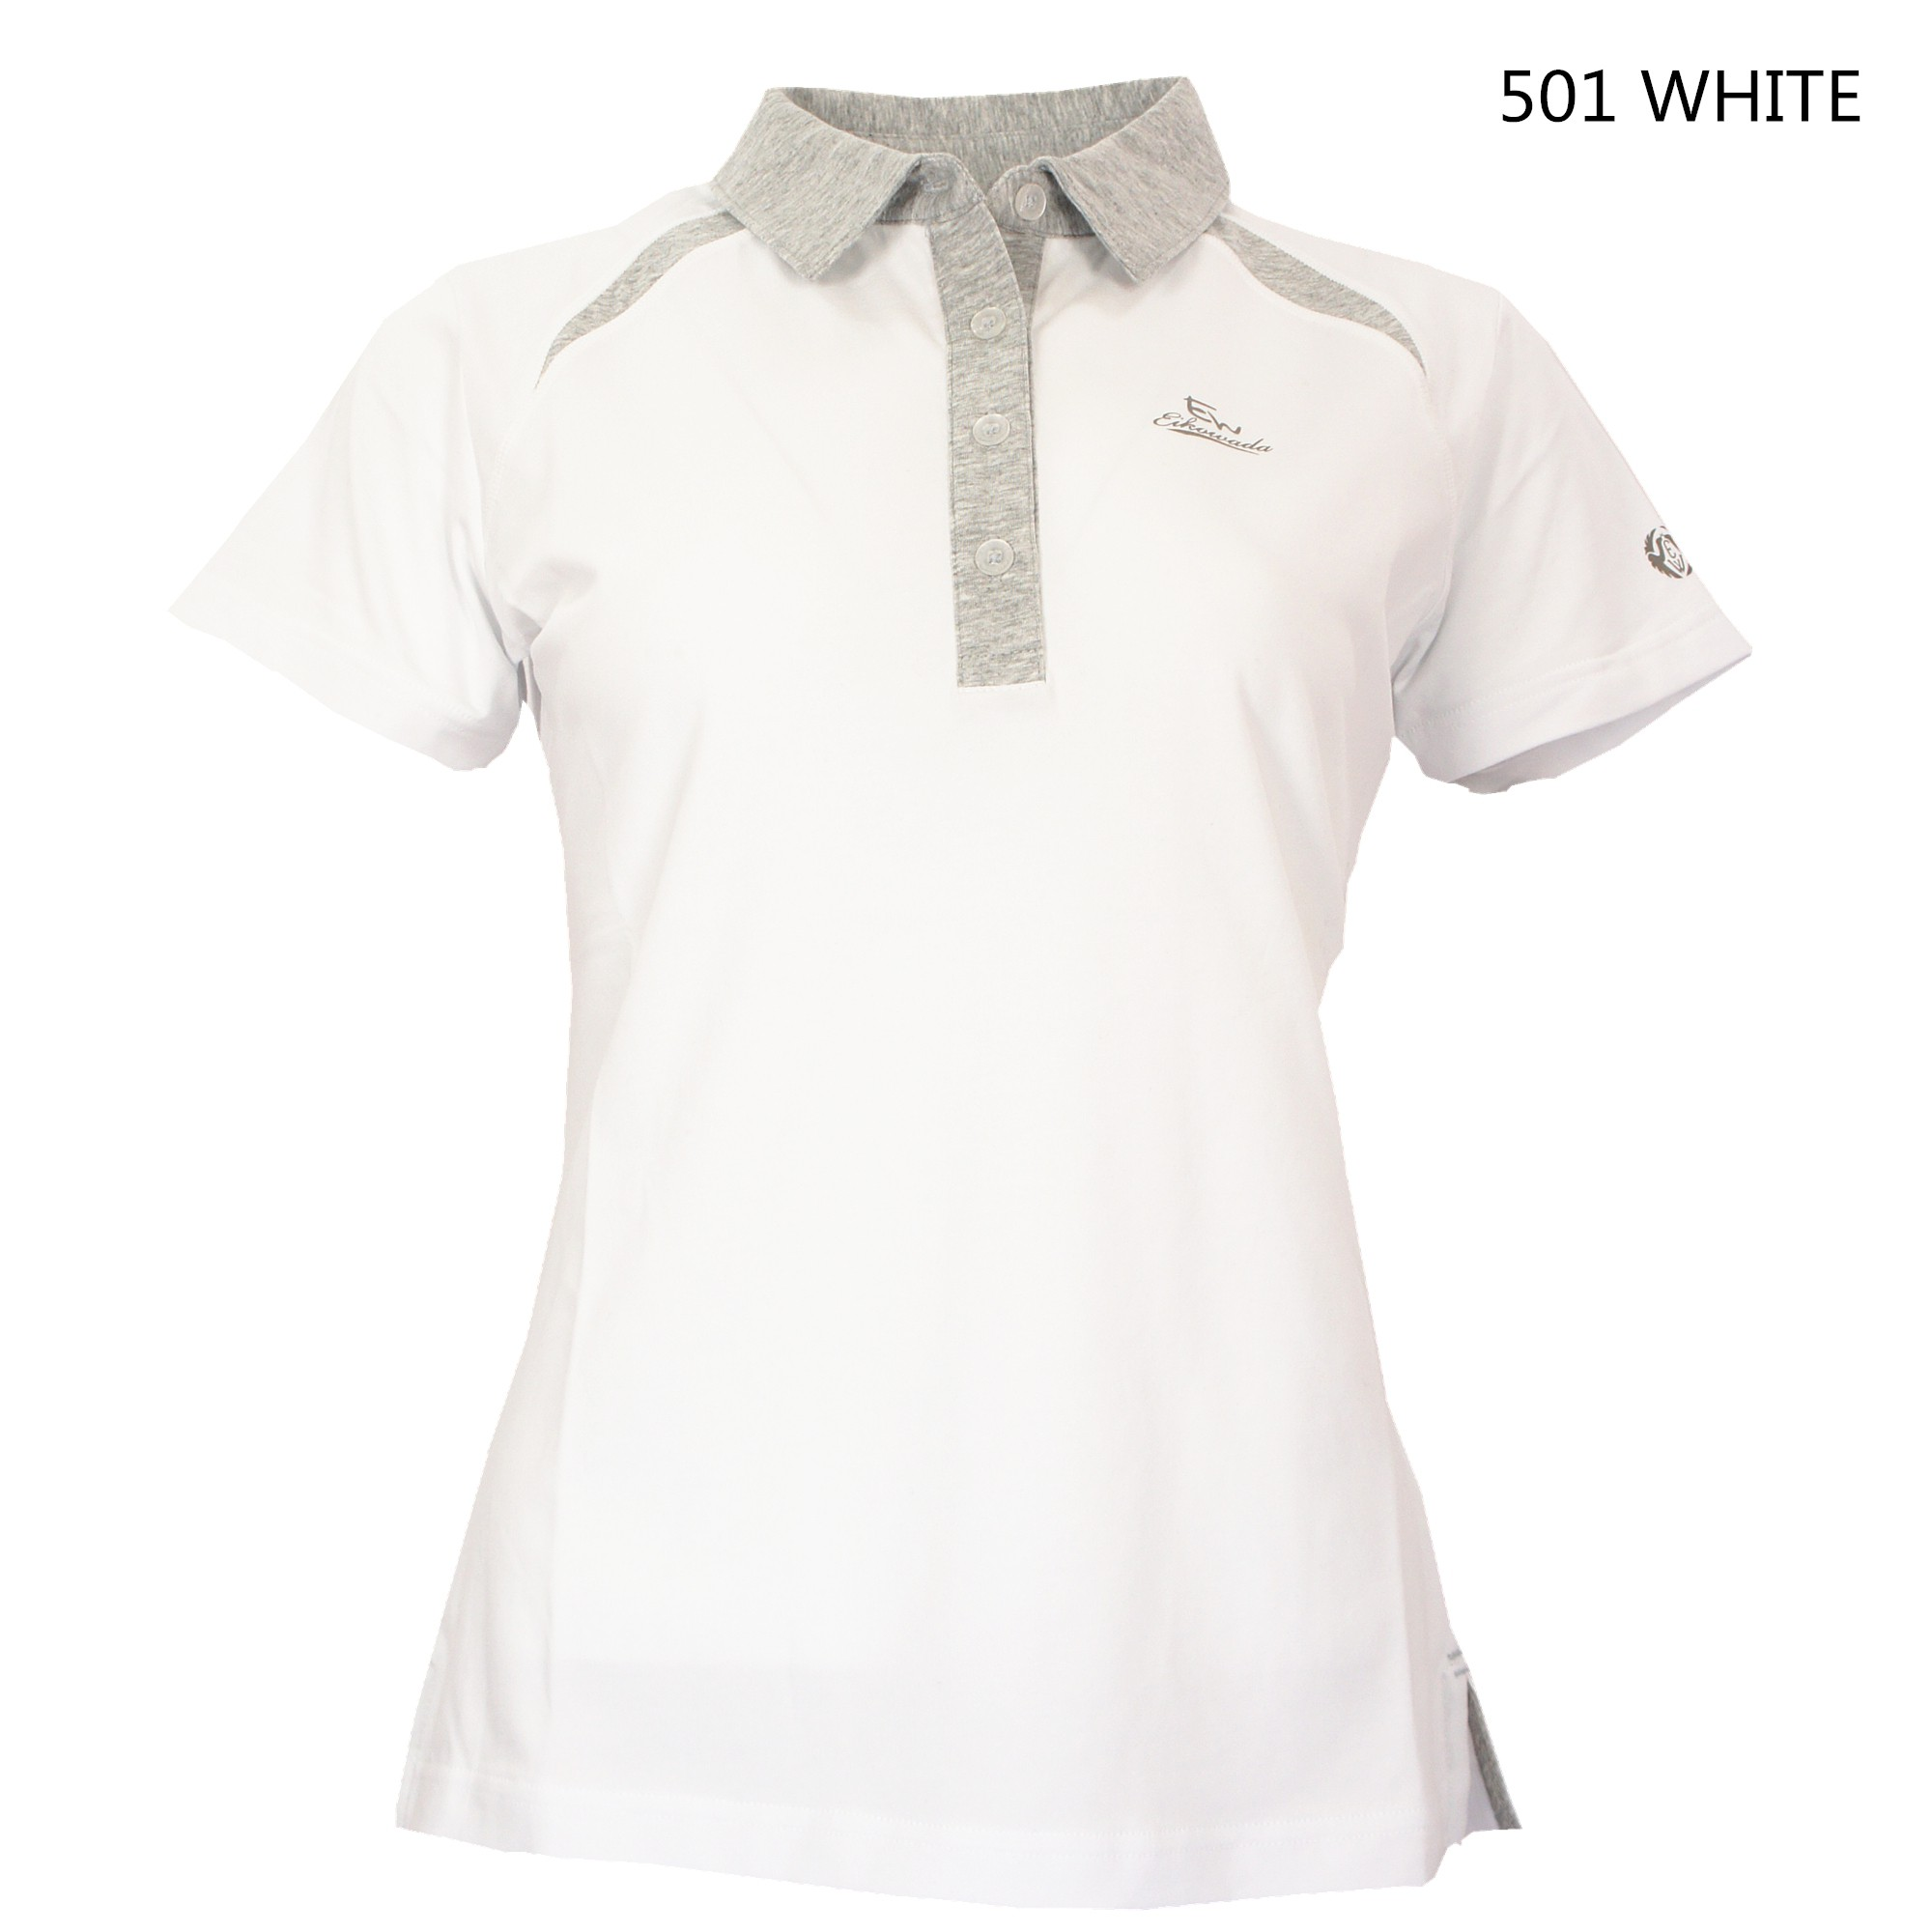 女裝防曬短袖Polo恤 UV PROTECTION AND QUICK DRY POLO-SHIRT WOMEN 女装防晒短袖Polo恤